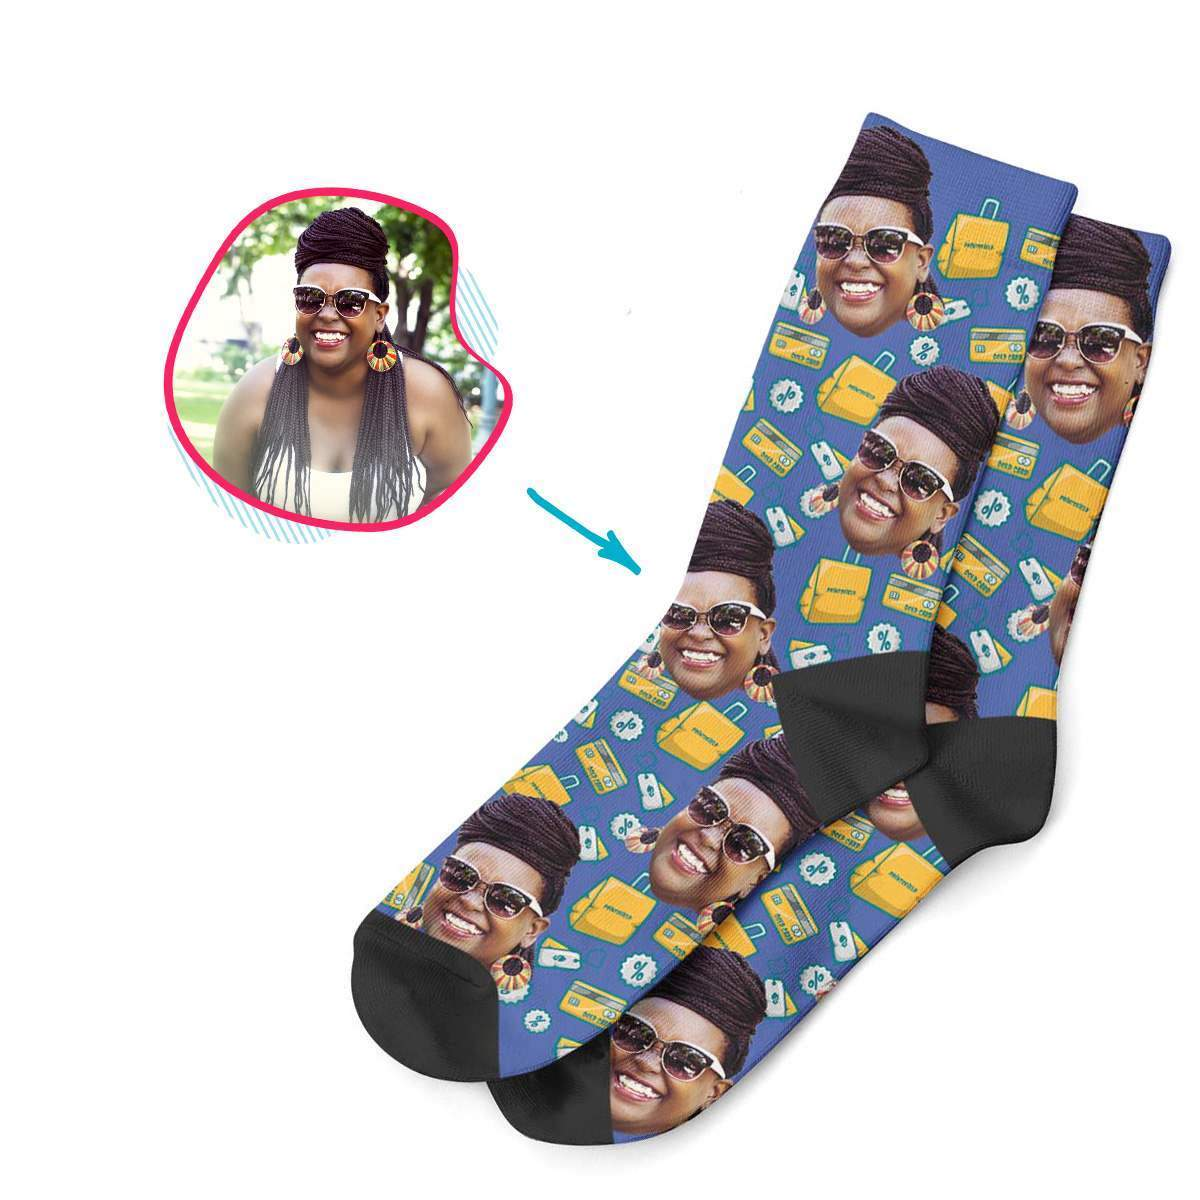 darkblue Shopping socks personalized with photo of face printed on them